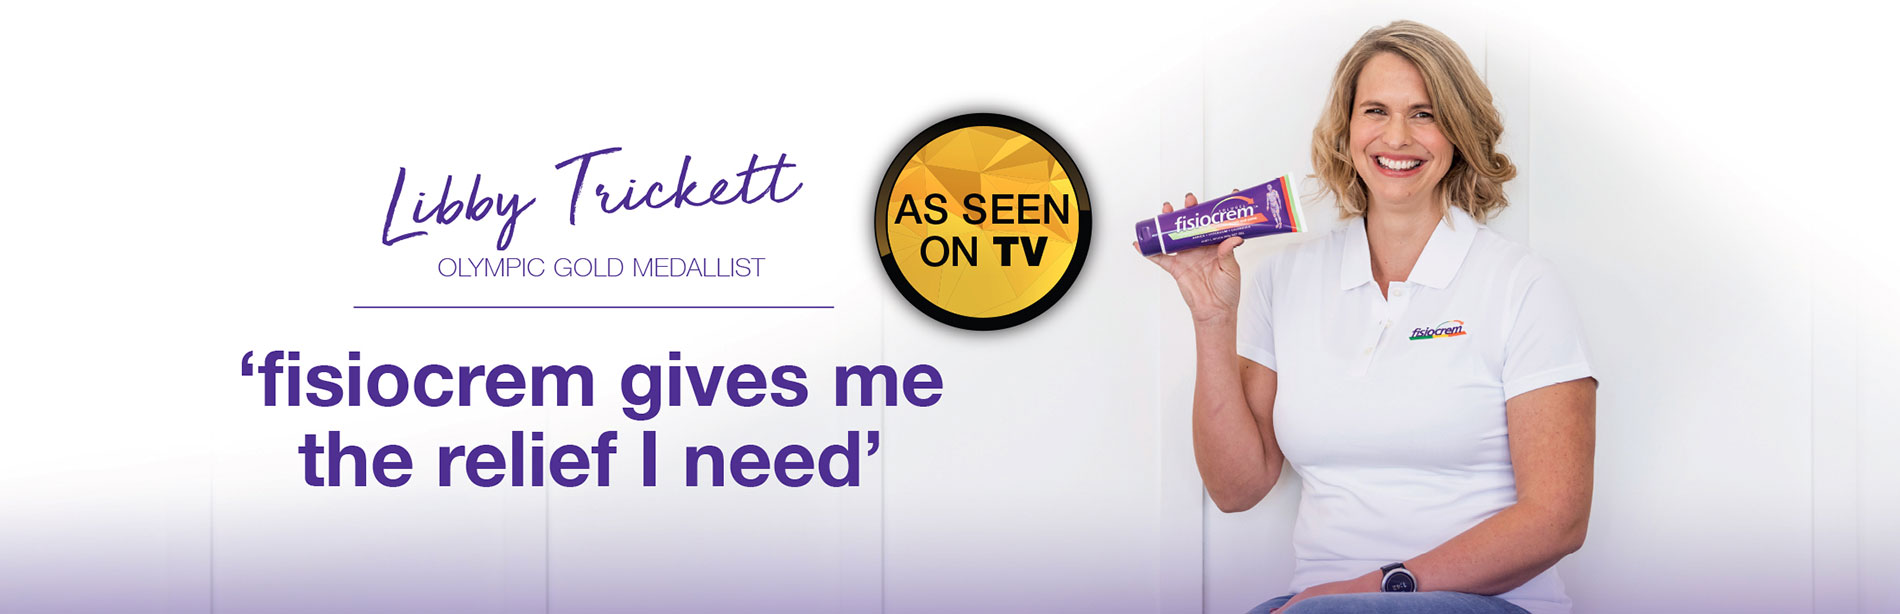 Libby Trickett - 'fisiocrem gives me the relief I need'